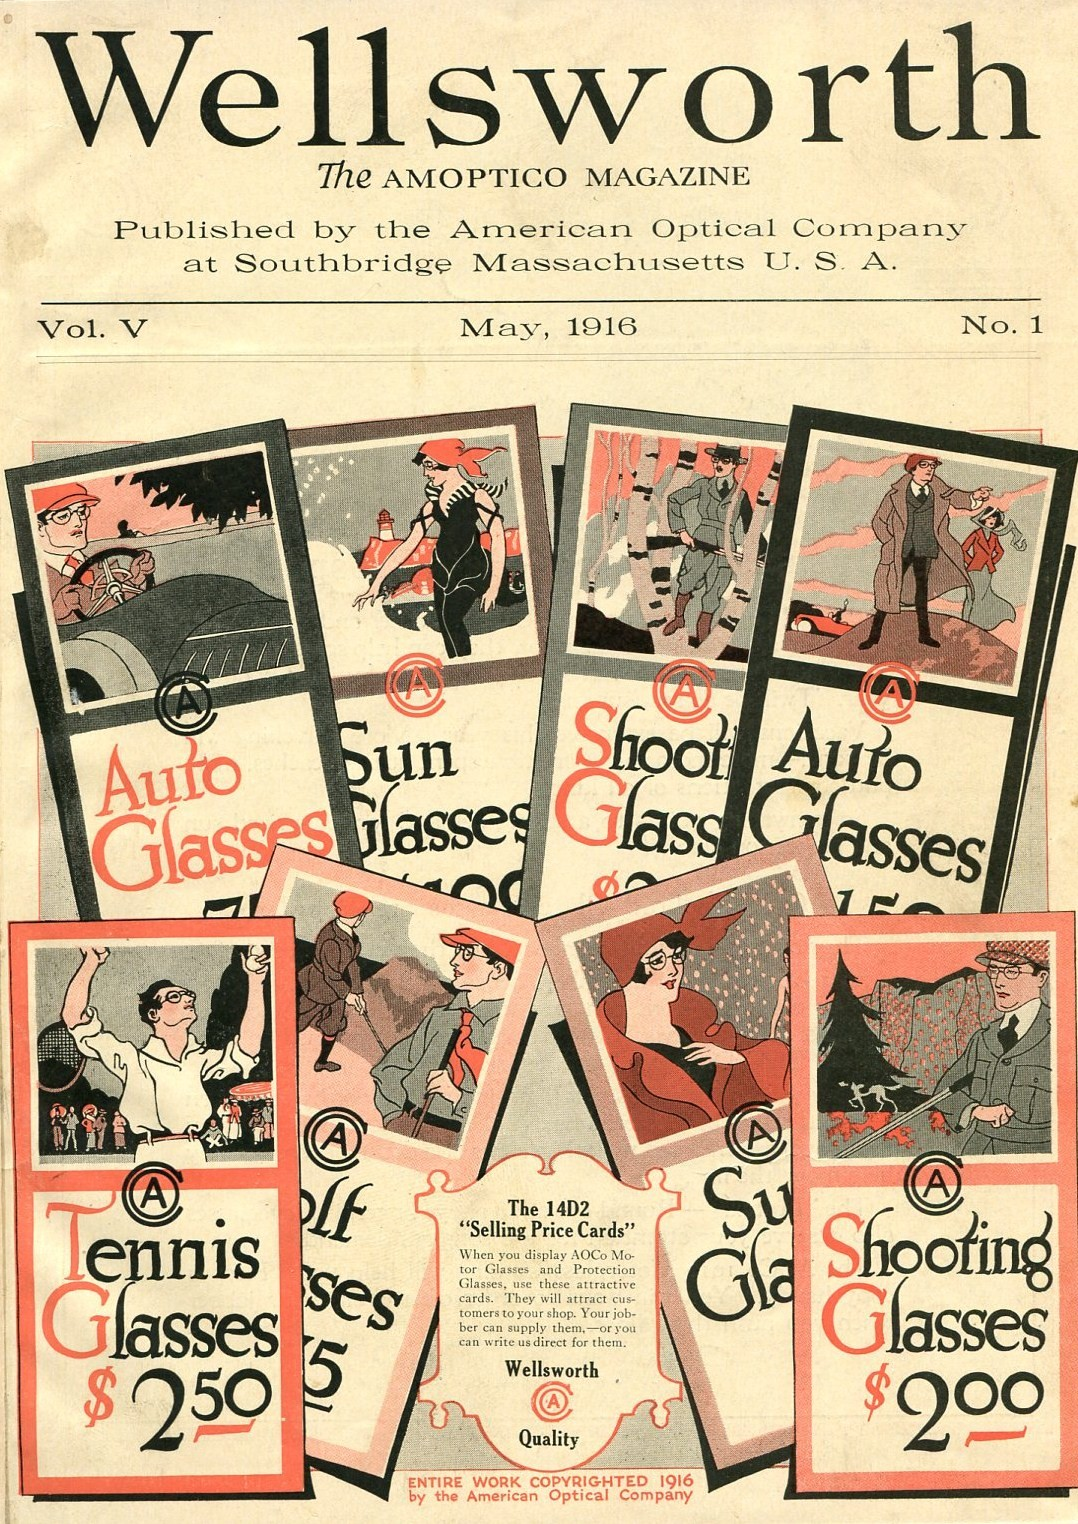 img642 may 1916 front cover.jpg